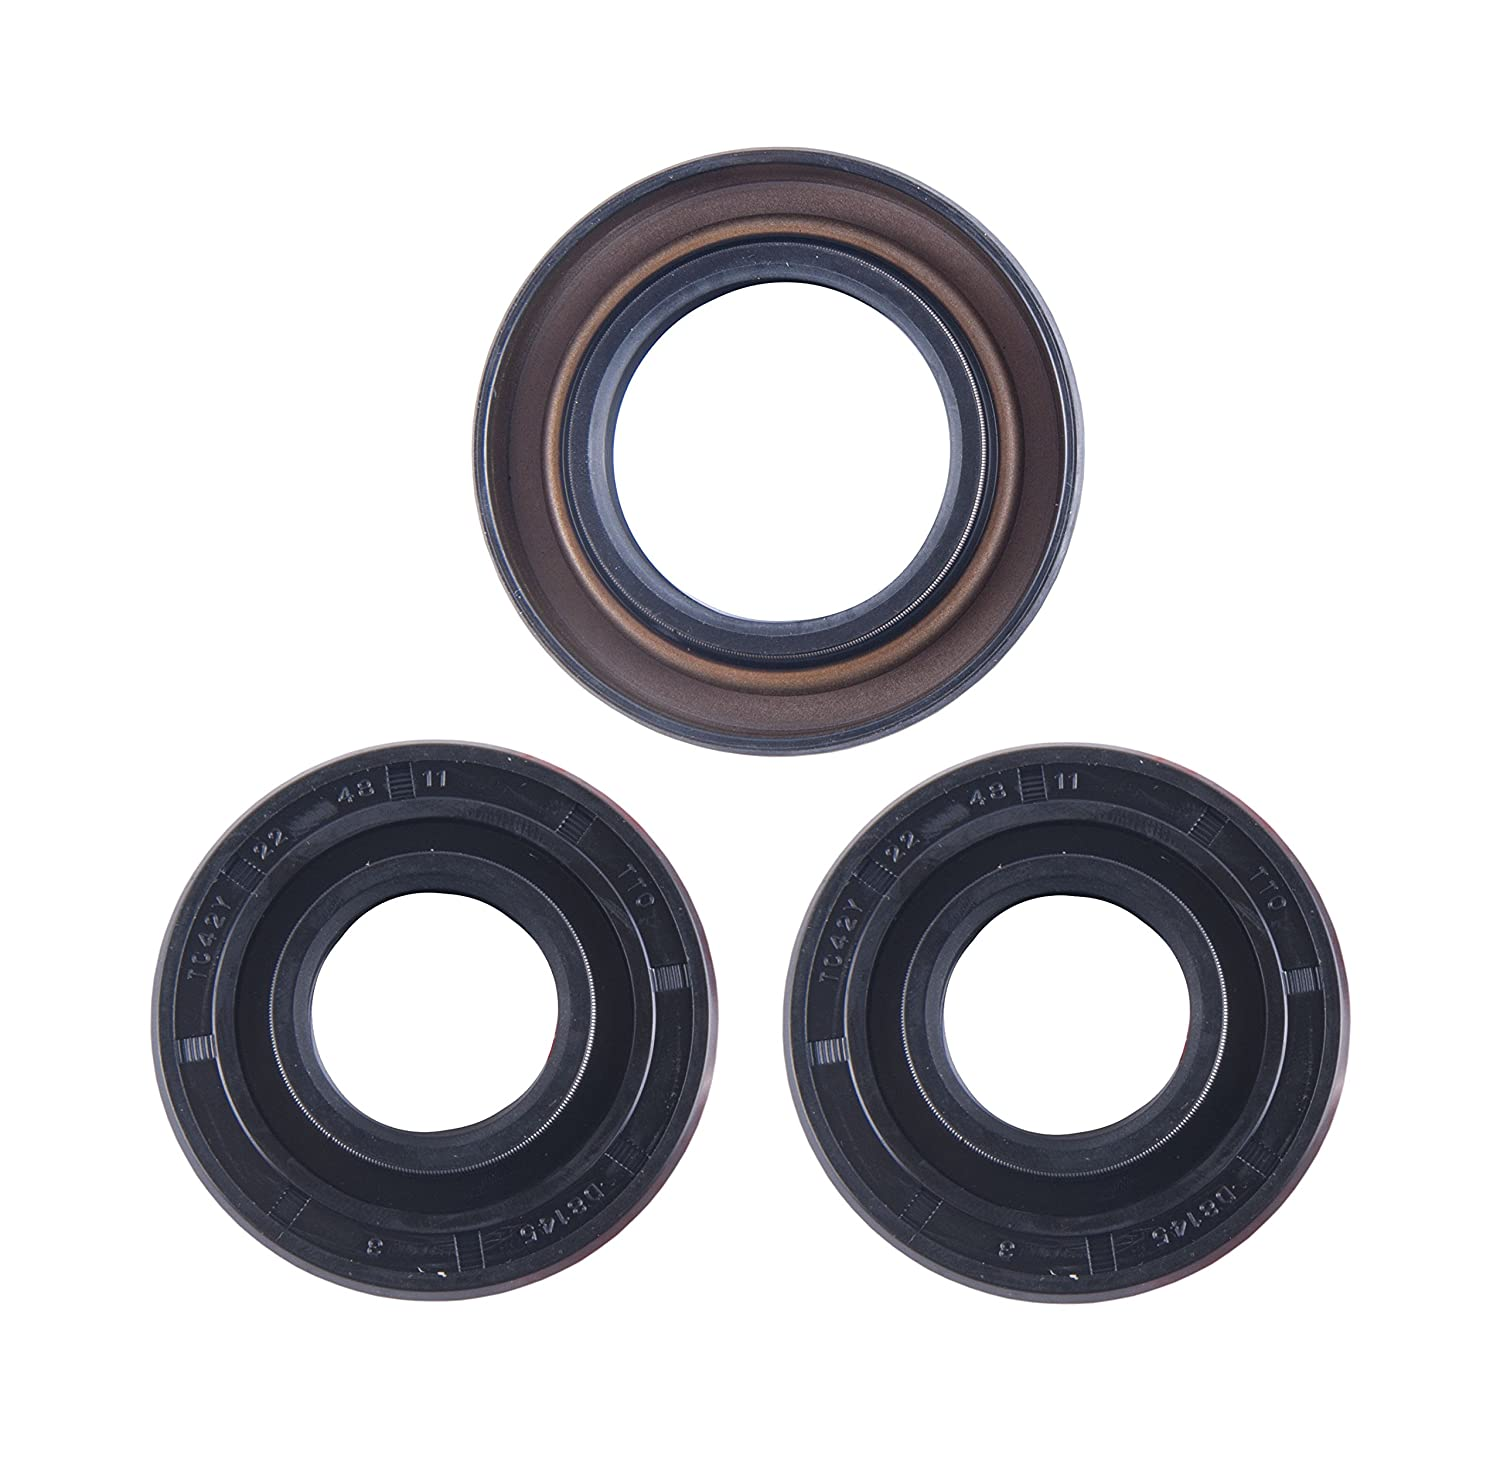 Honda TRX 300 FW front differential seal kit Fourtrax 1988 1989 1990 1991 1992 - 2000 East Lake Axle